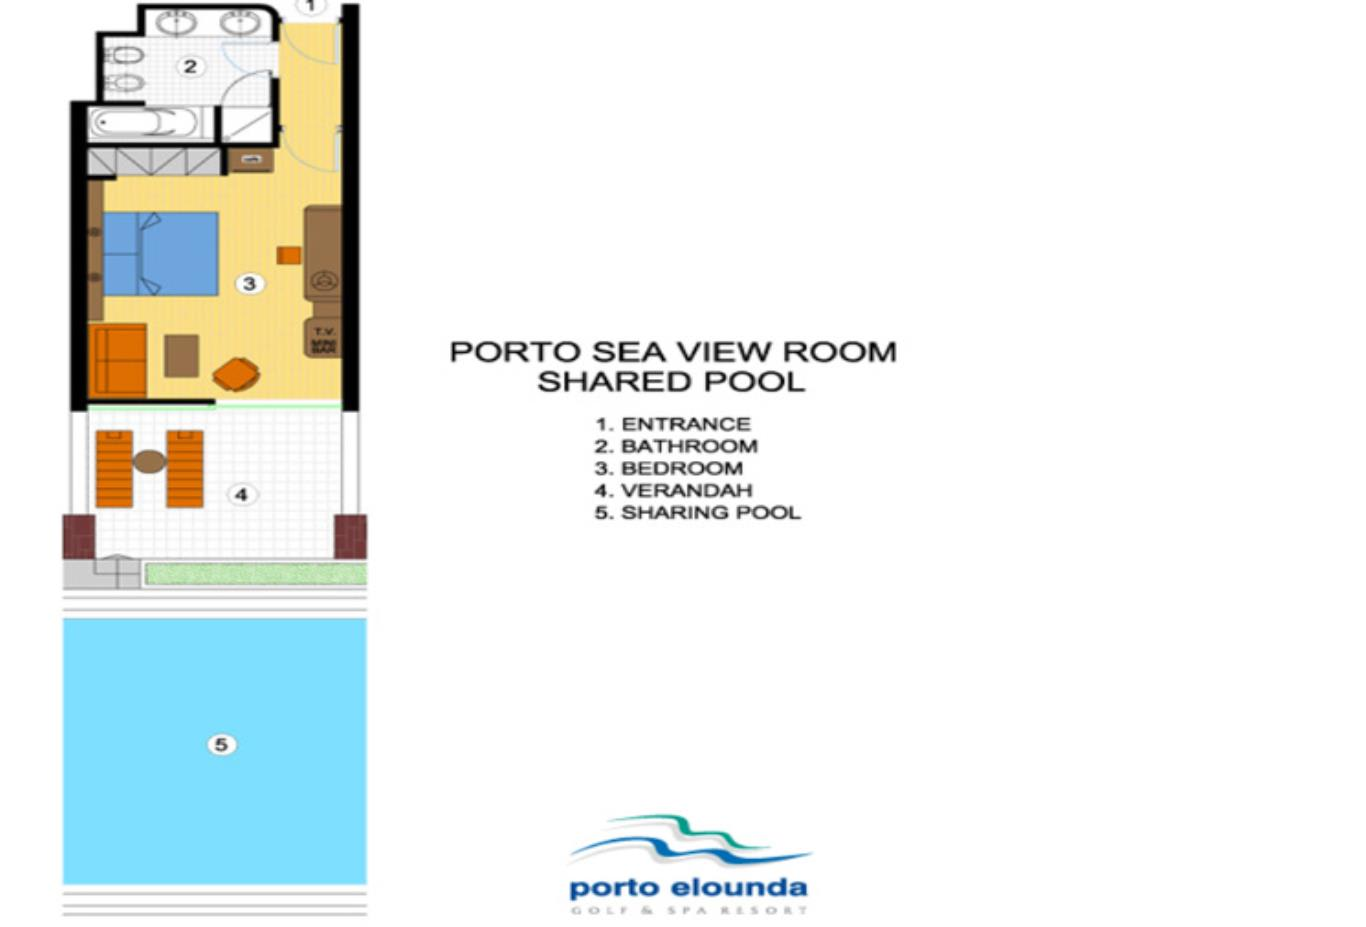 Porto Sea View Room Shared Pool floorplan